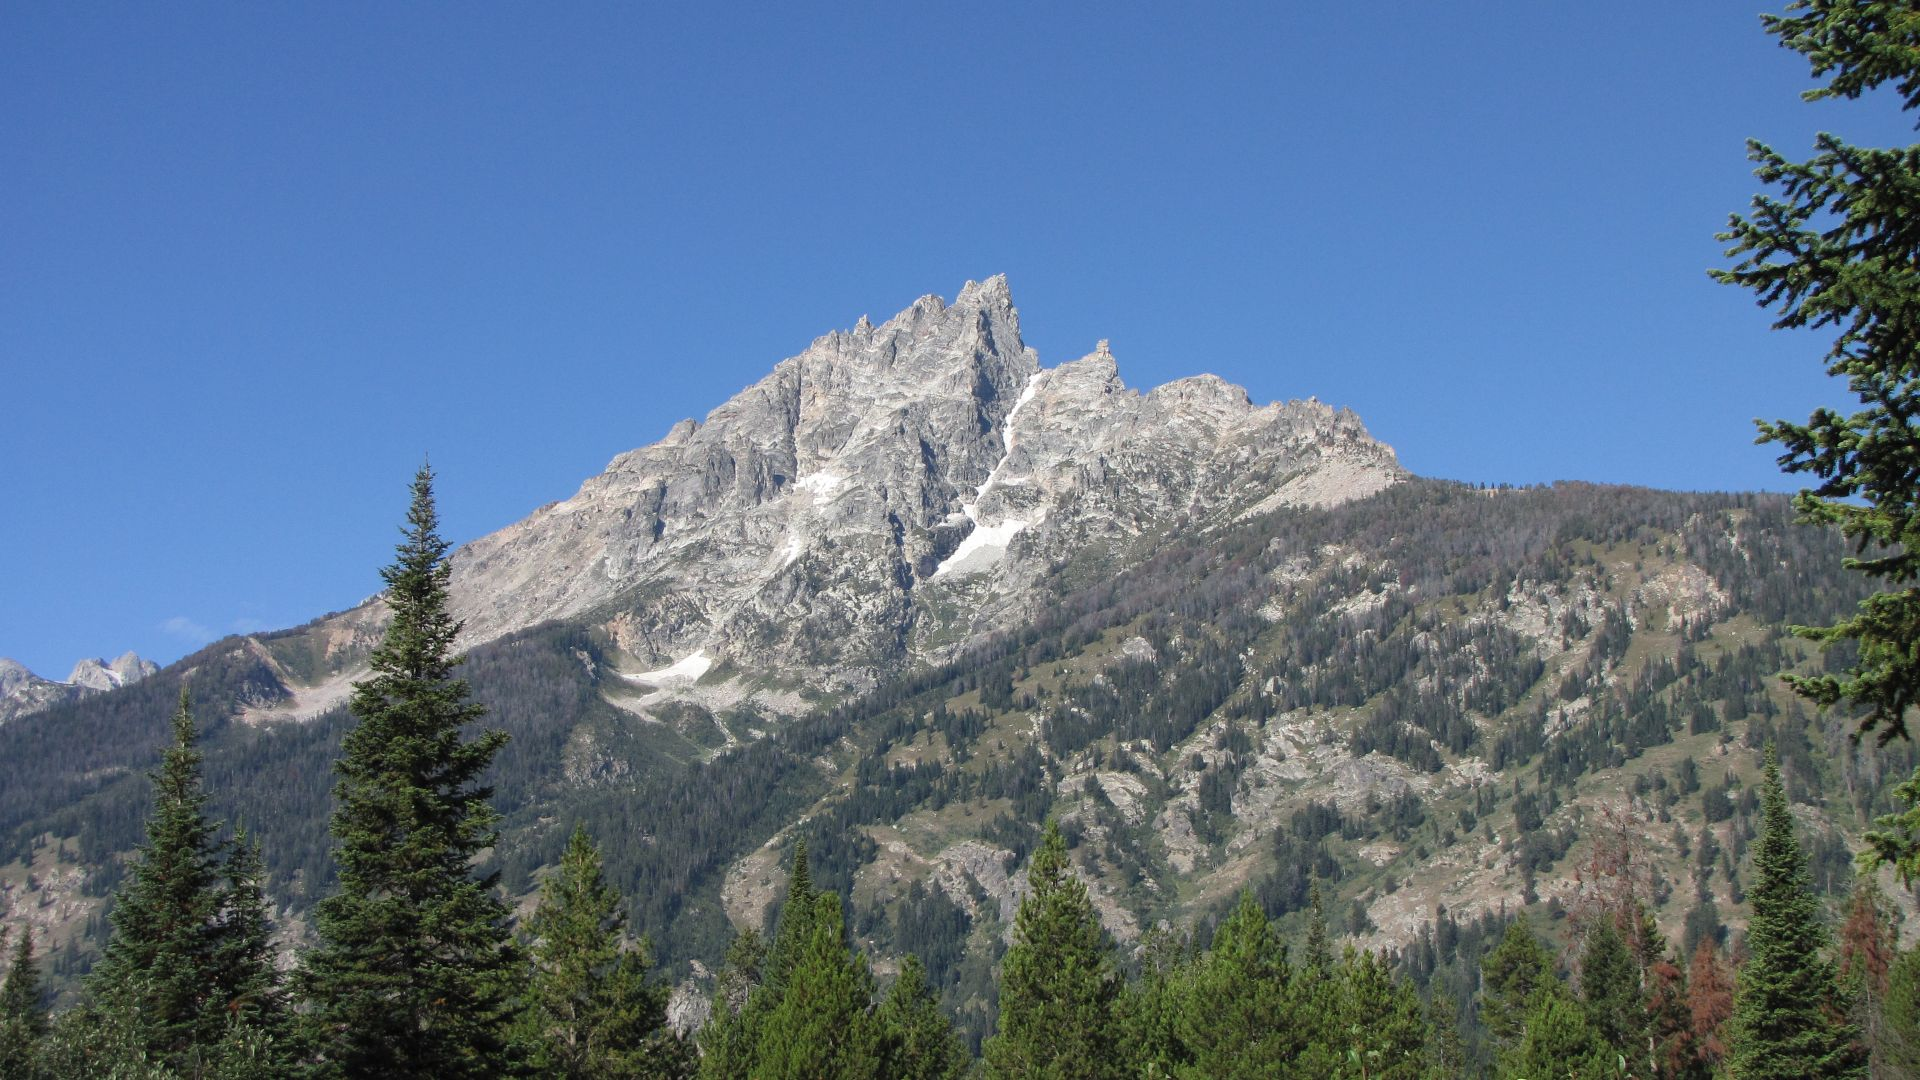 Grand Teton Nat Pk, WY, USA - Grand Teton peak